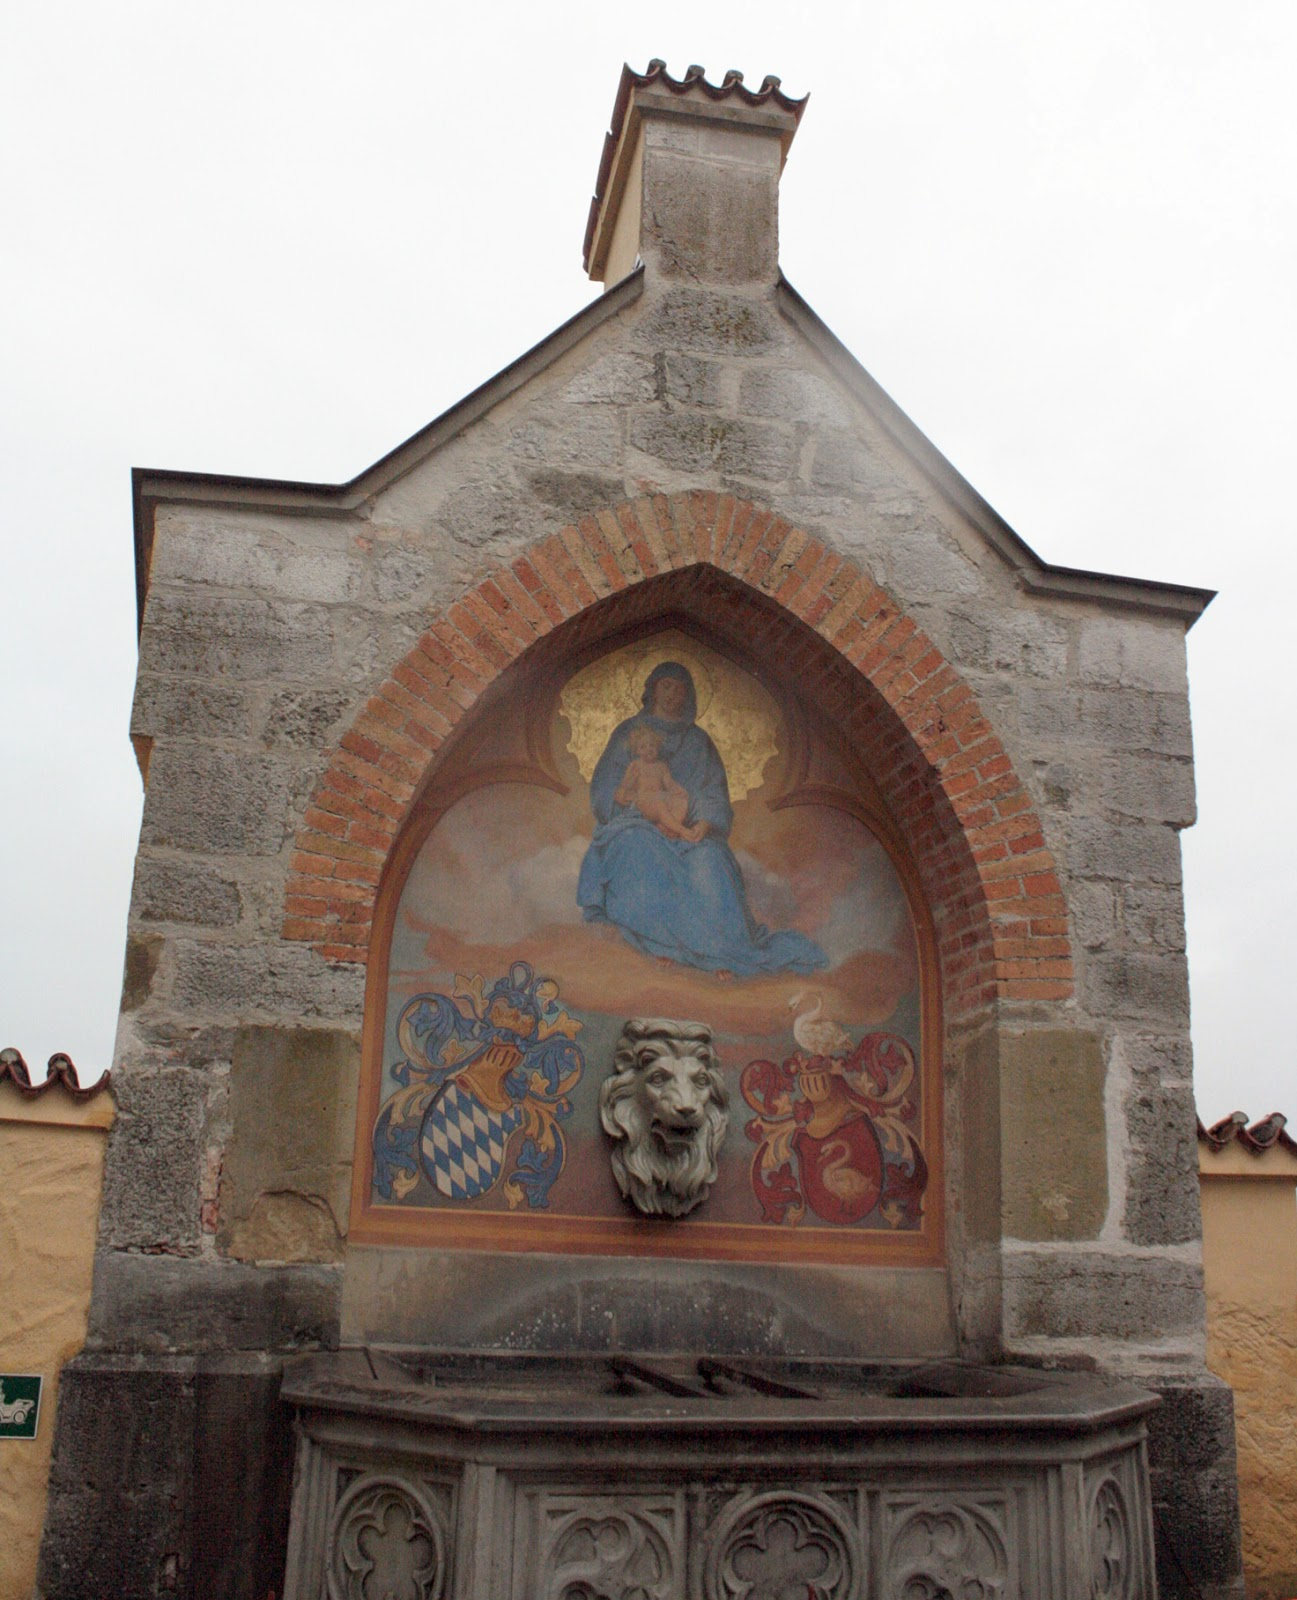 A well with the images of the Virgin Mary, Bavarian and Schwangau crestsThe Tipsy Terrier blog